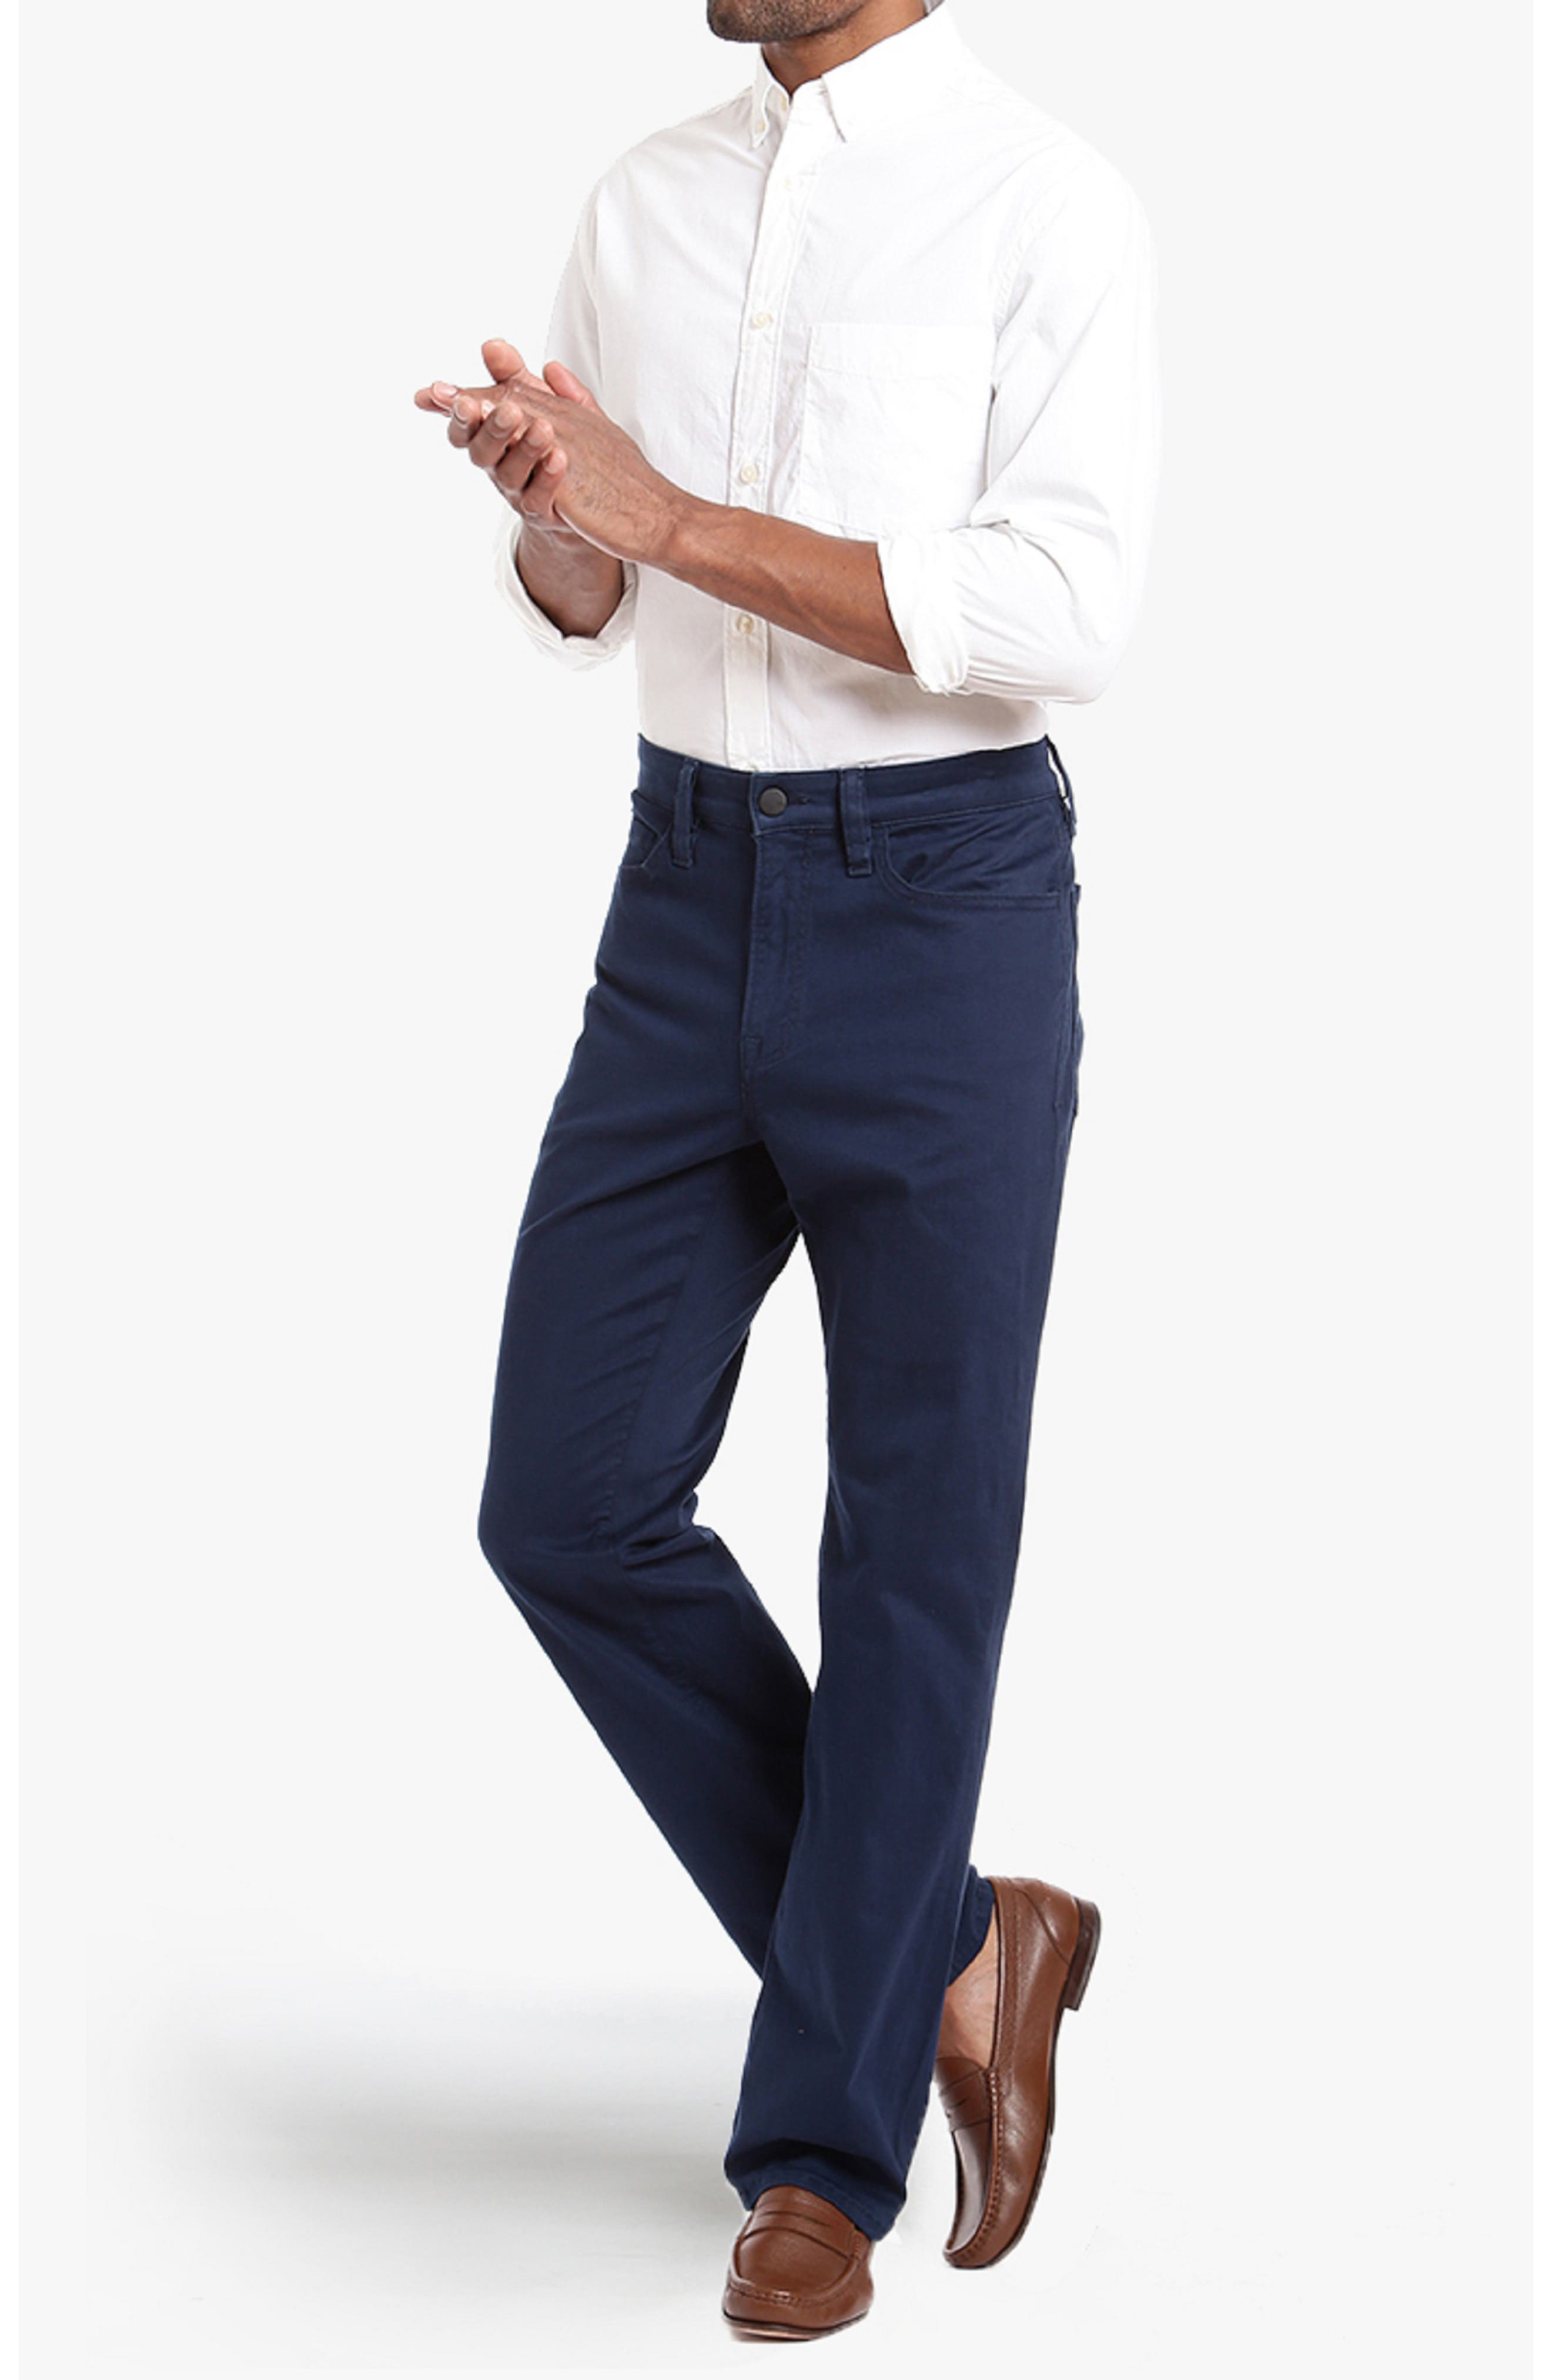 'Charisma' Classic Relaxed Fit,                             Alternate thumbnail 4, color,                             BLUE TWILL